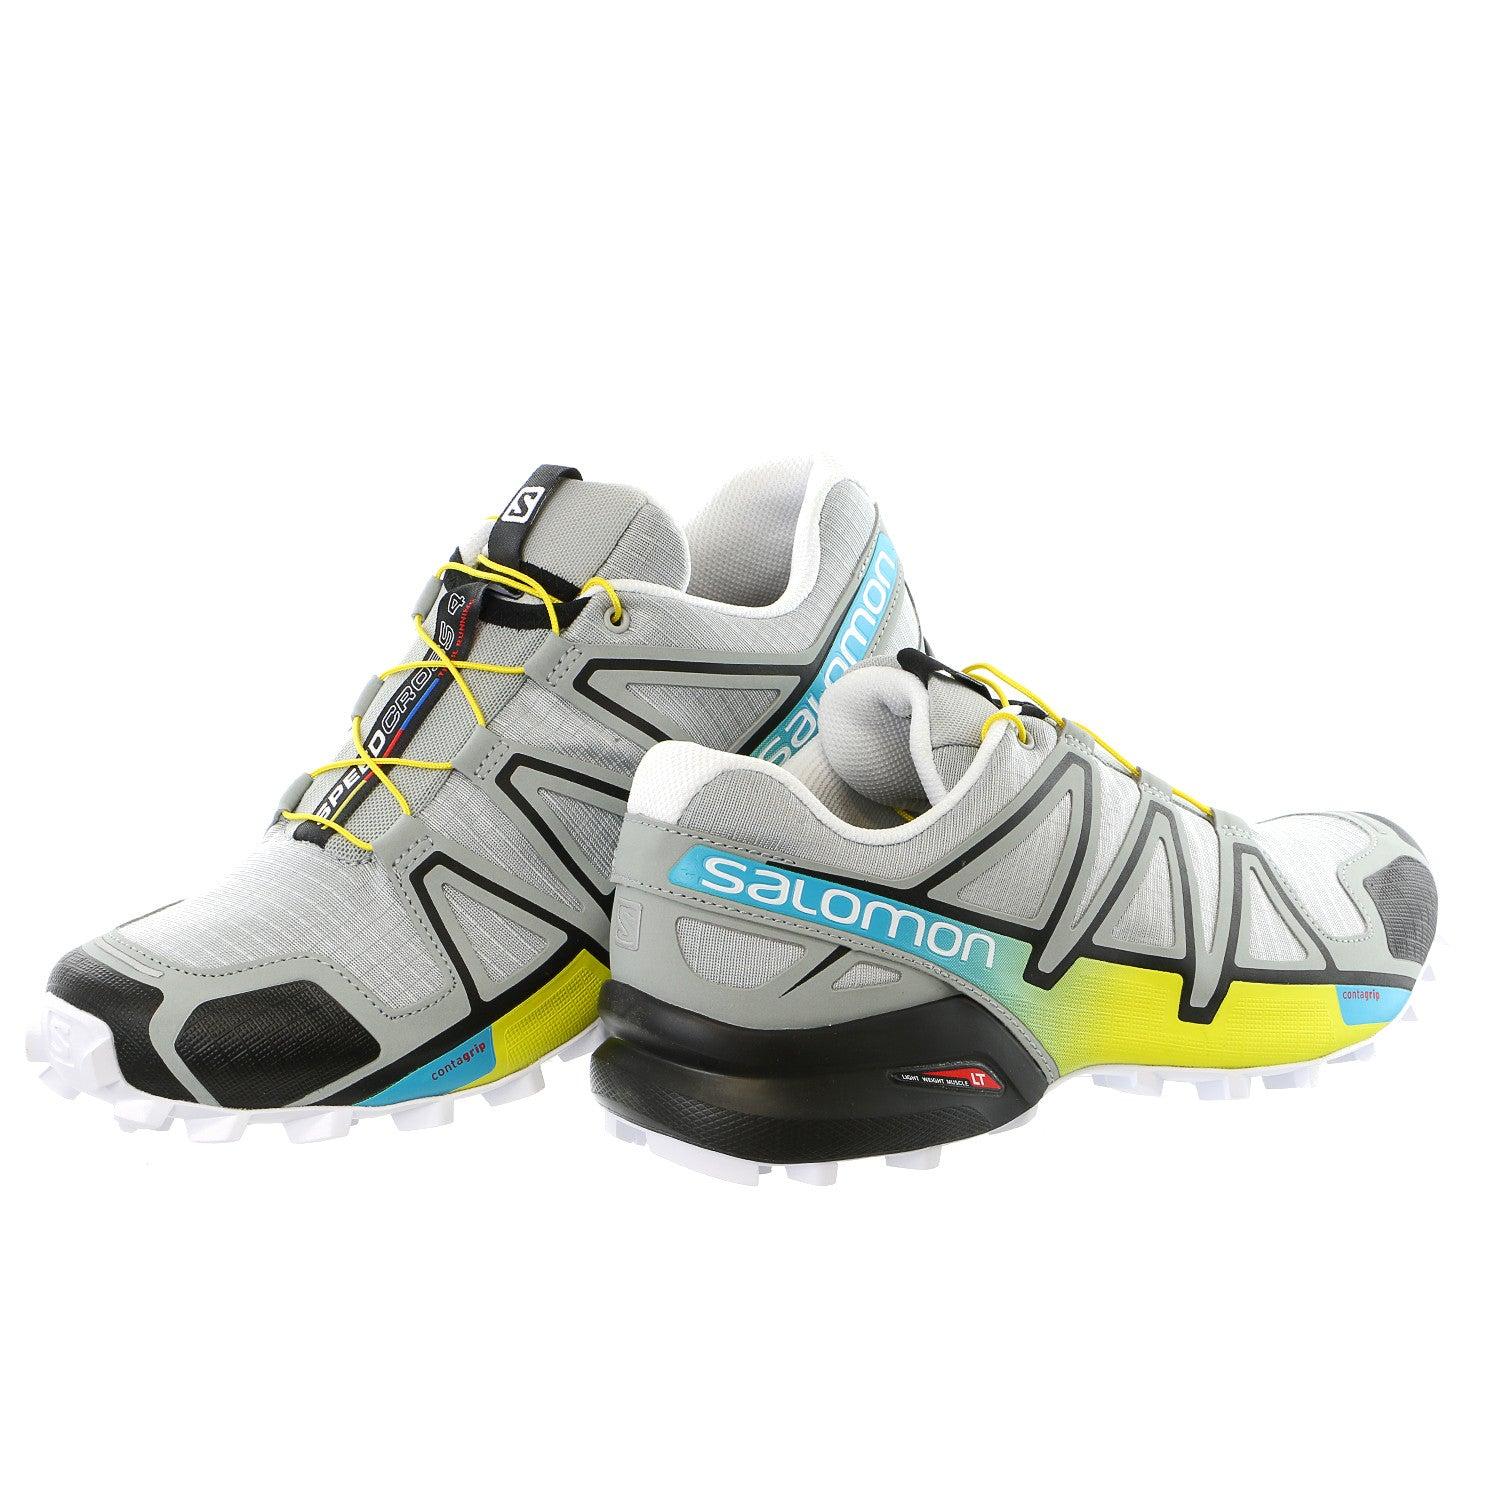 95008a295a28 Salomon Speedcross 4 Trail Running Shoes - Men s - Shoplifestyle